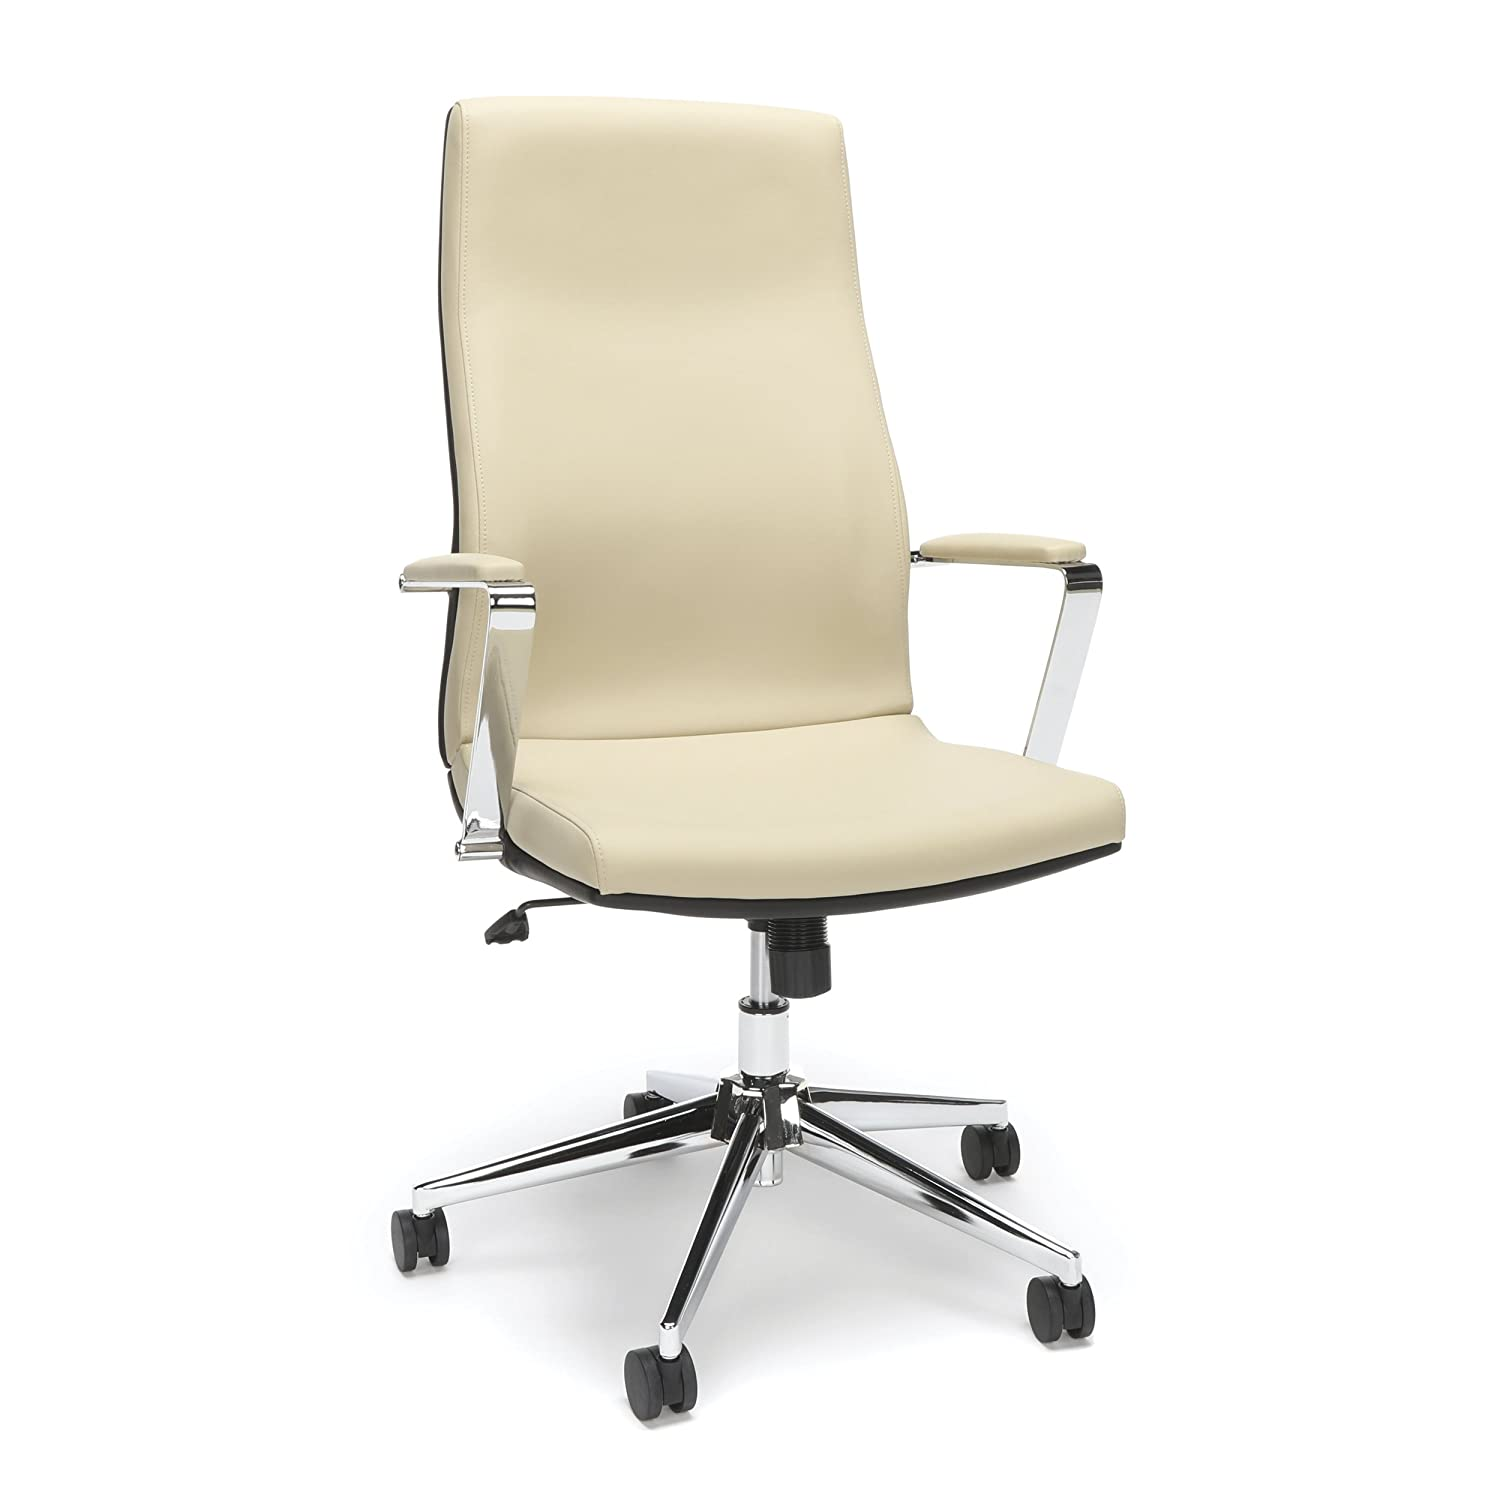 Superb Amazon Com Bonded Leather Manager Chair High Back Office Beatyapartments Chair Design Images Beatyapartmentscom